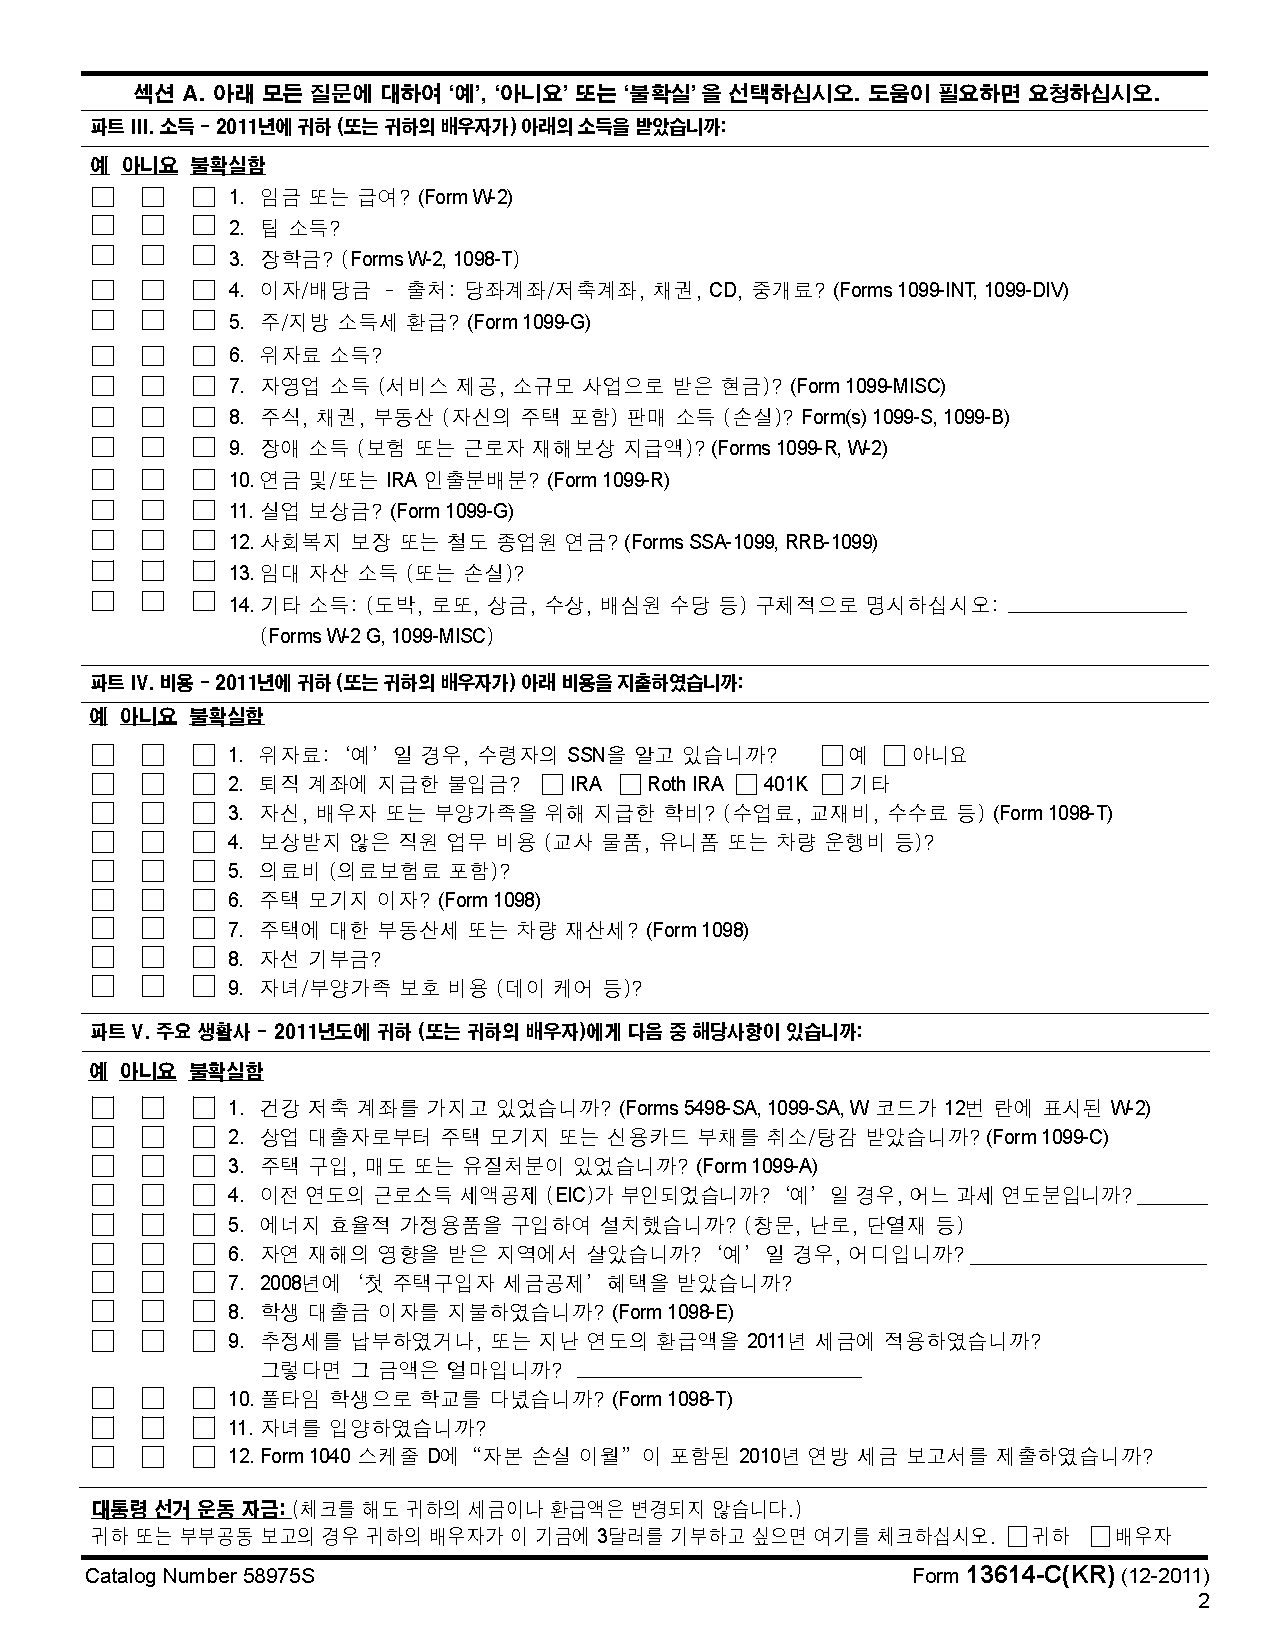 Form 13614 c kr intakeinterview quality review sheet korean view all 2011 irs tax forms falaconquin